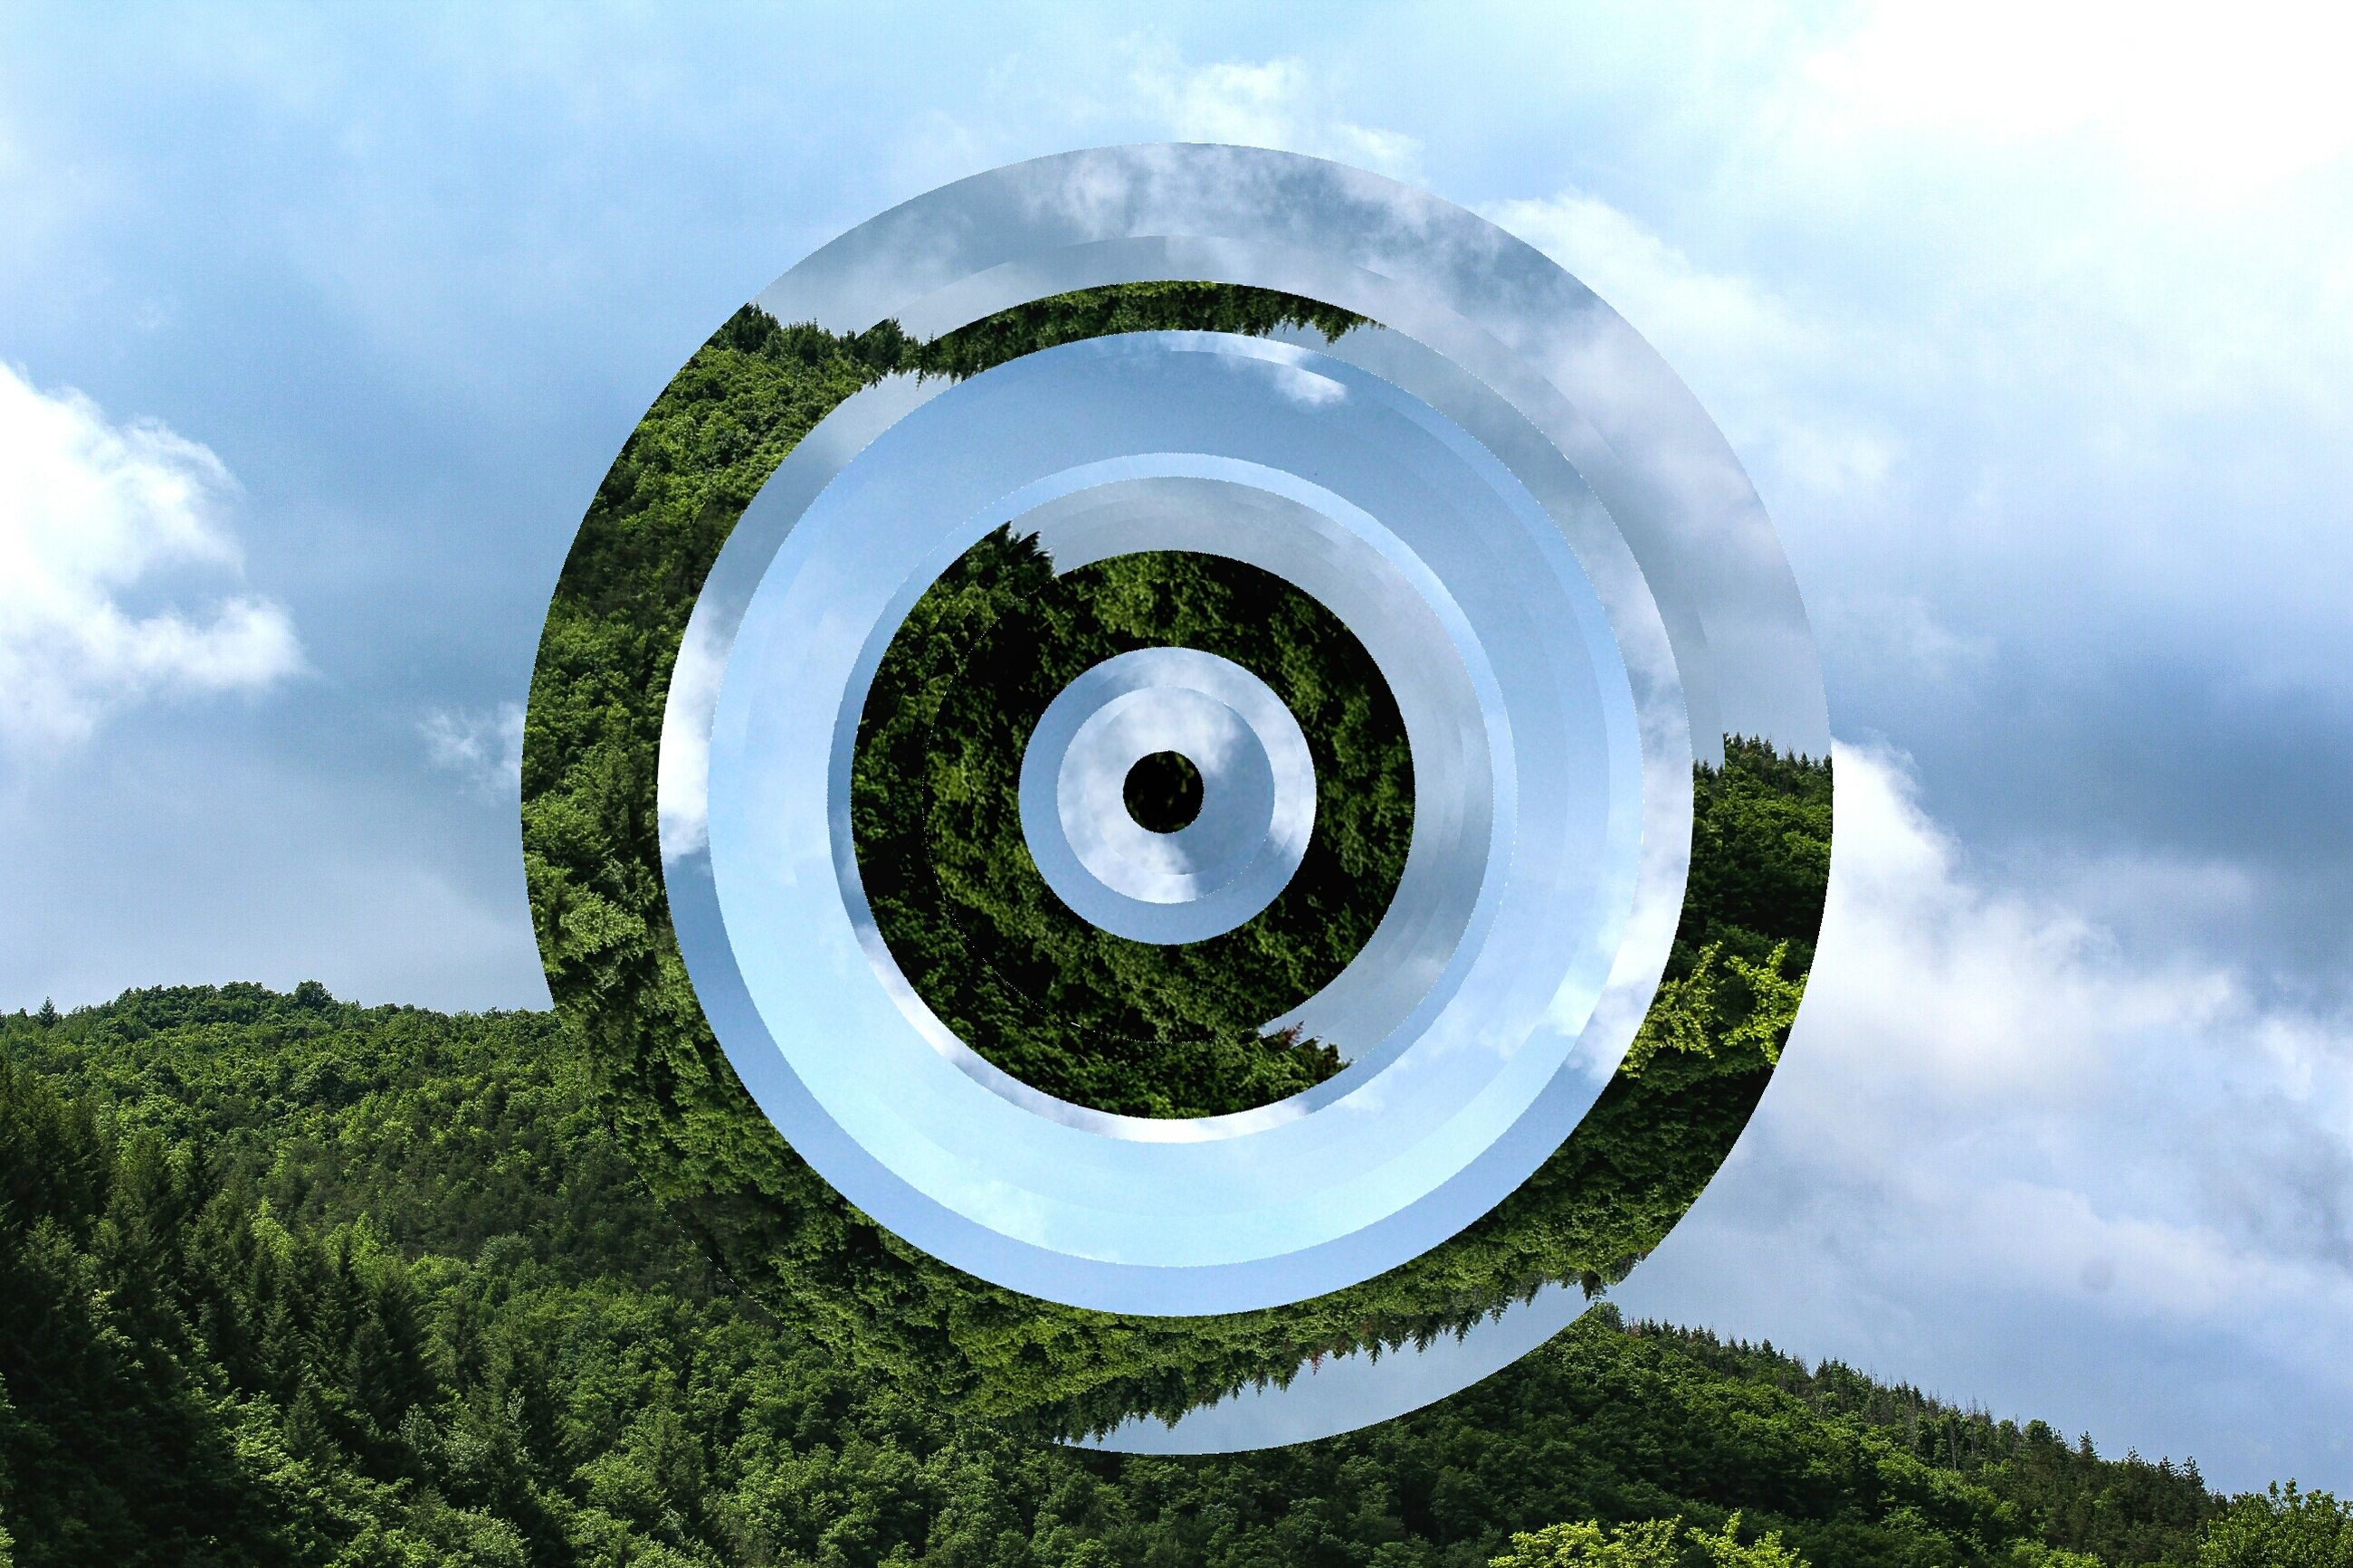 circle, sky, tree, cloud - sky, green color, no people, day, outdoors, growth, nature, close-up